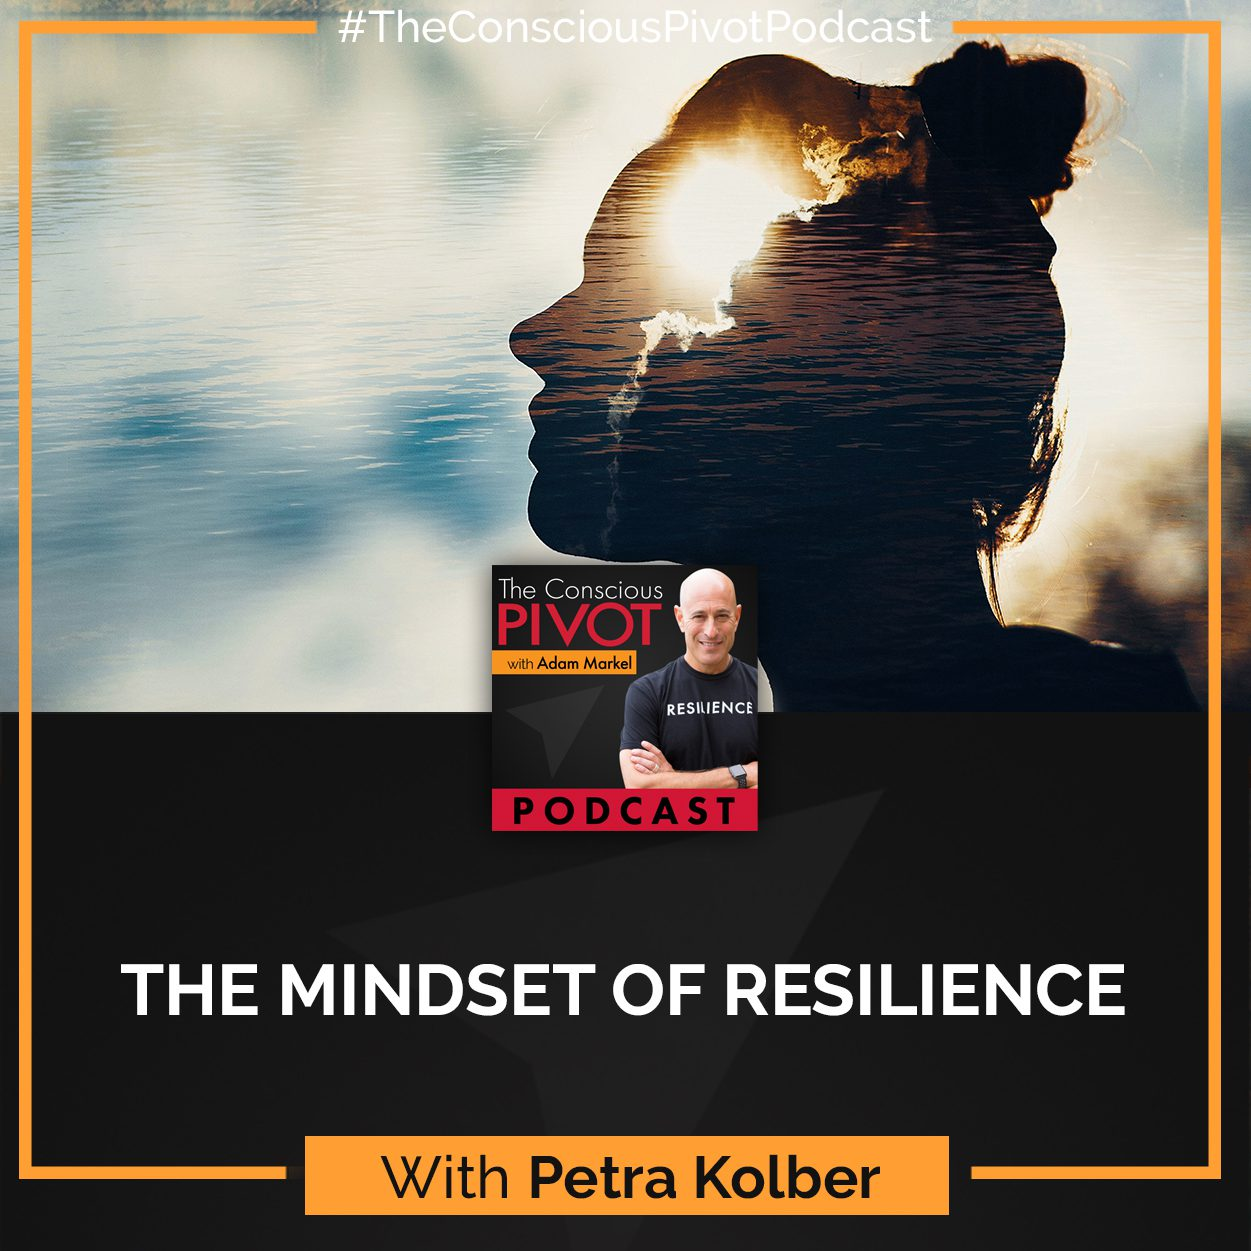 The Mindset Of Resilience With Petra Kolber